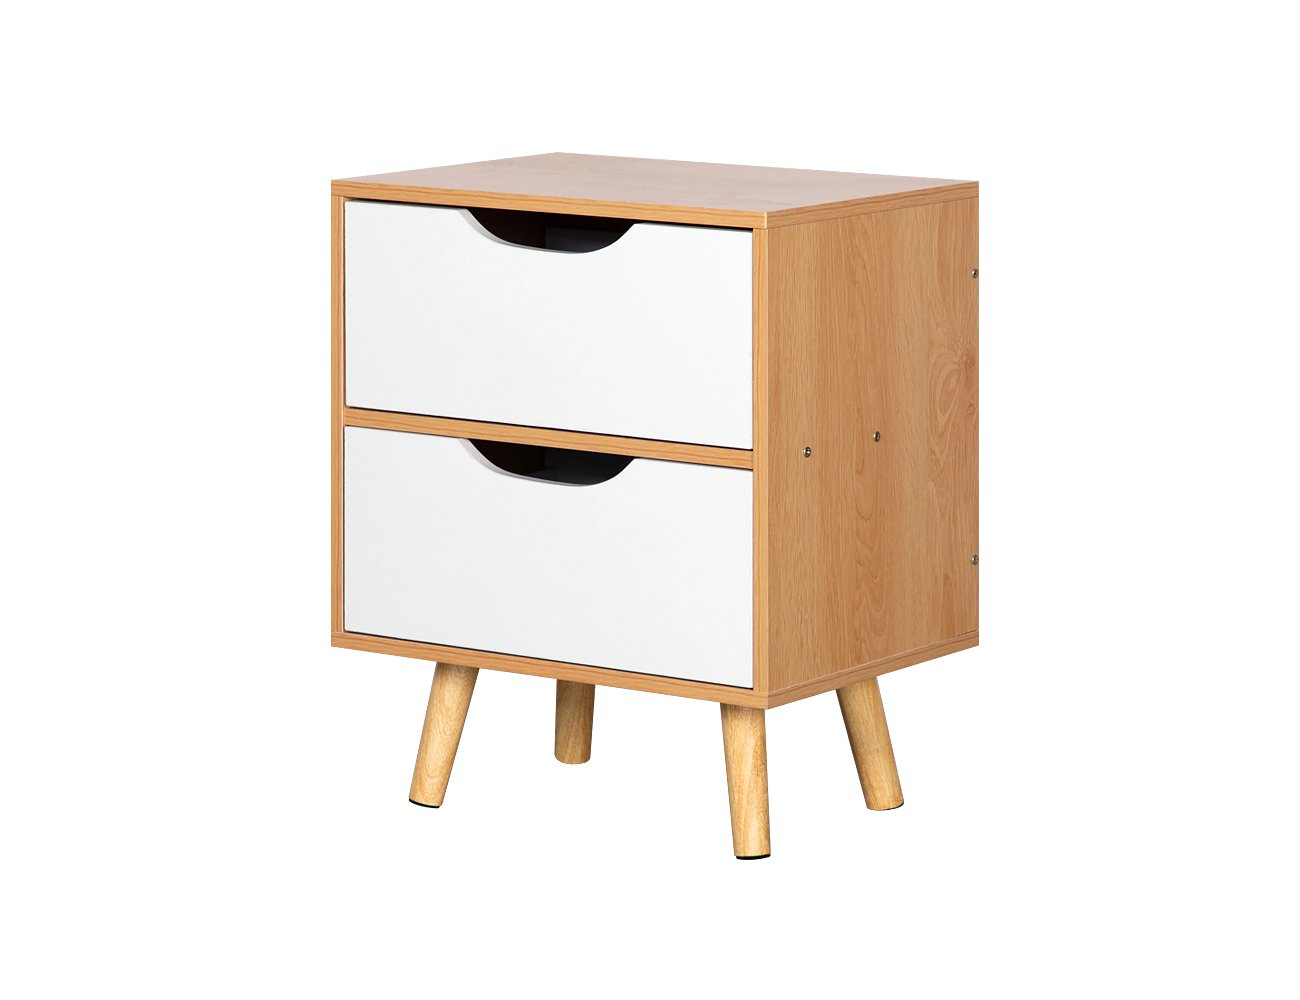 2 Level Bedside Drawers - Maple (Fully Assembled)